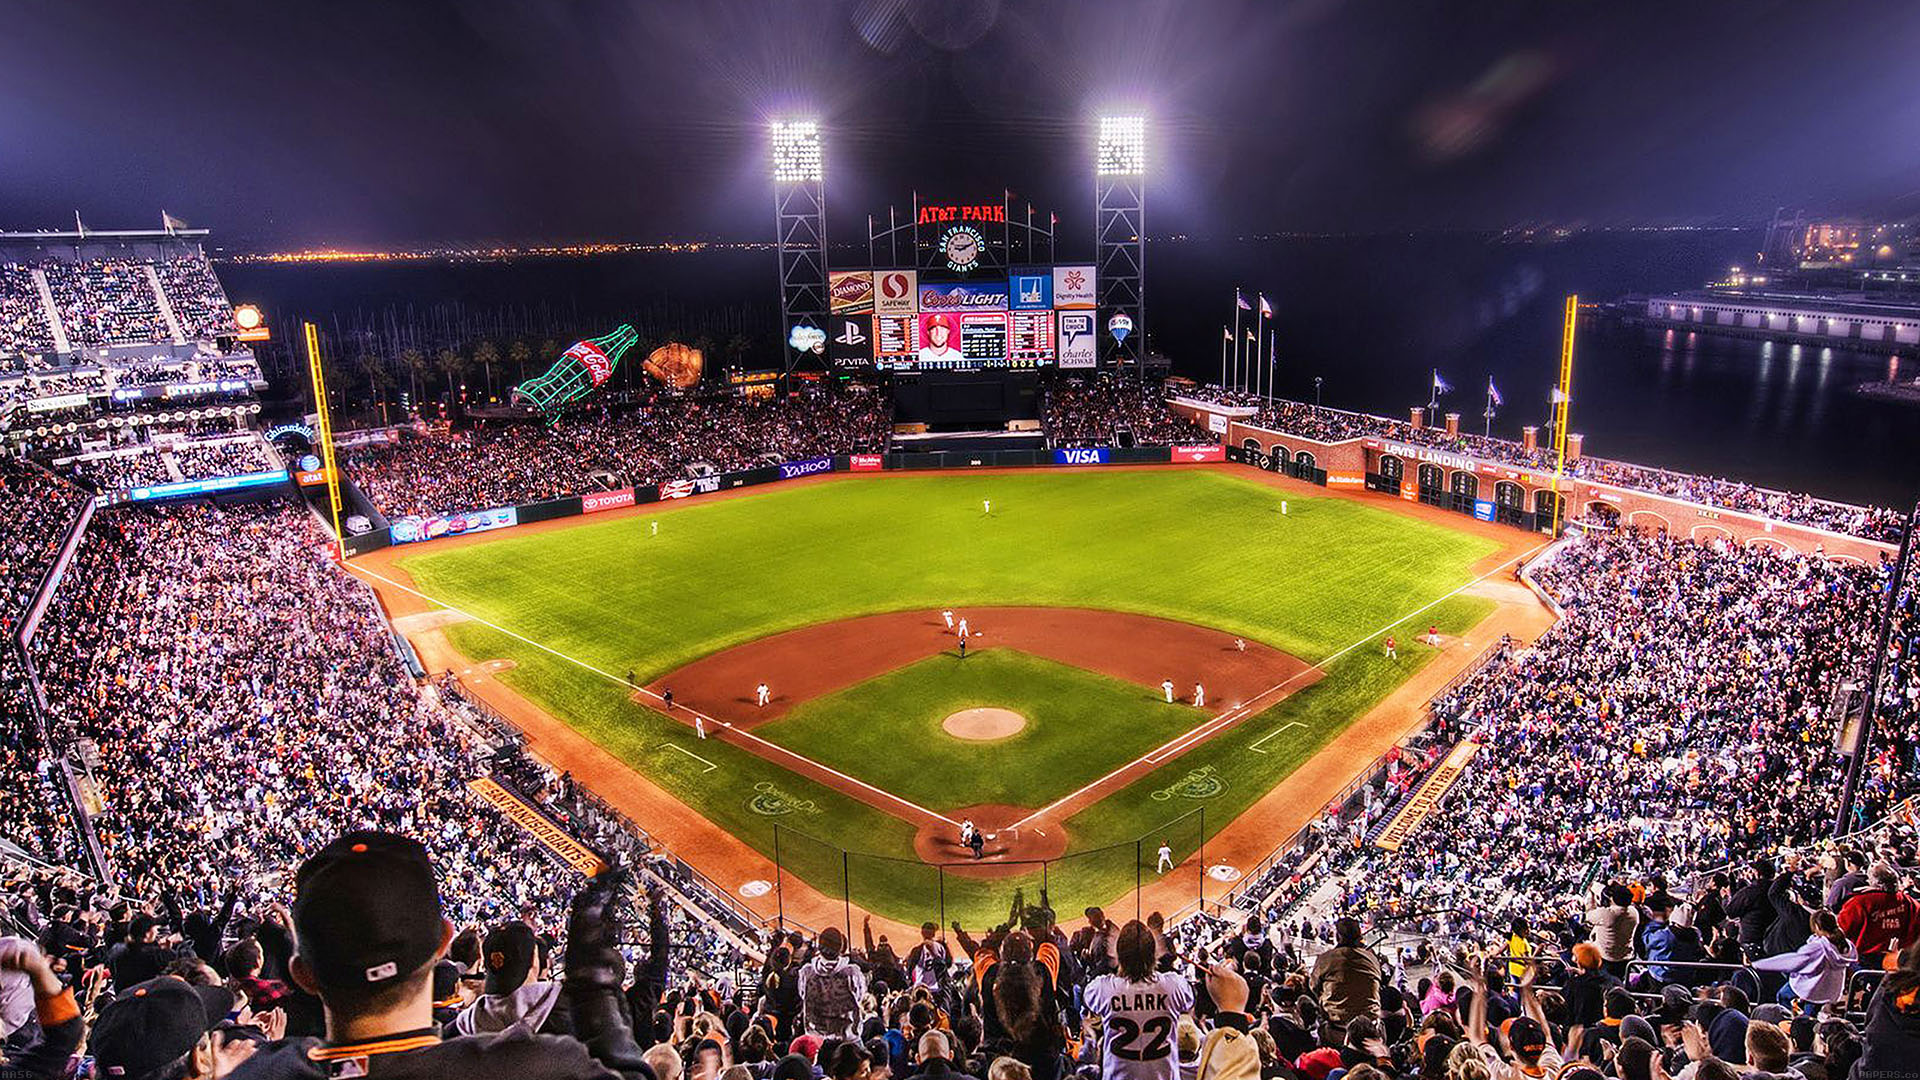 4k Christmas Wallpaper Iphone X Aa57 Baseball Stadium Sports Art Papers Co